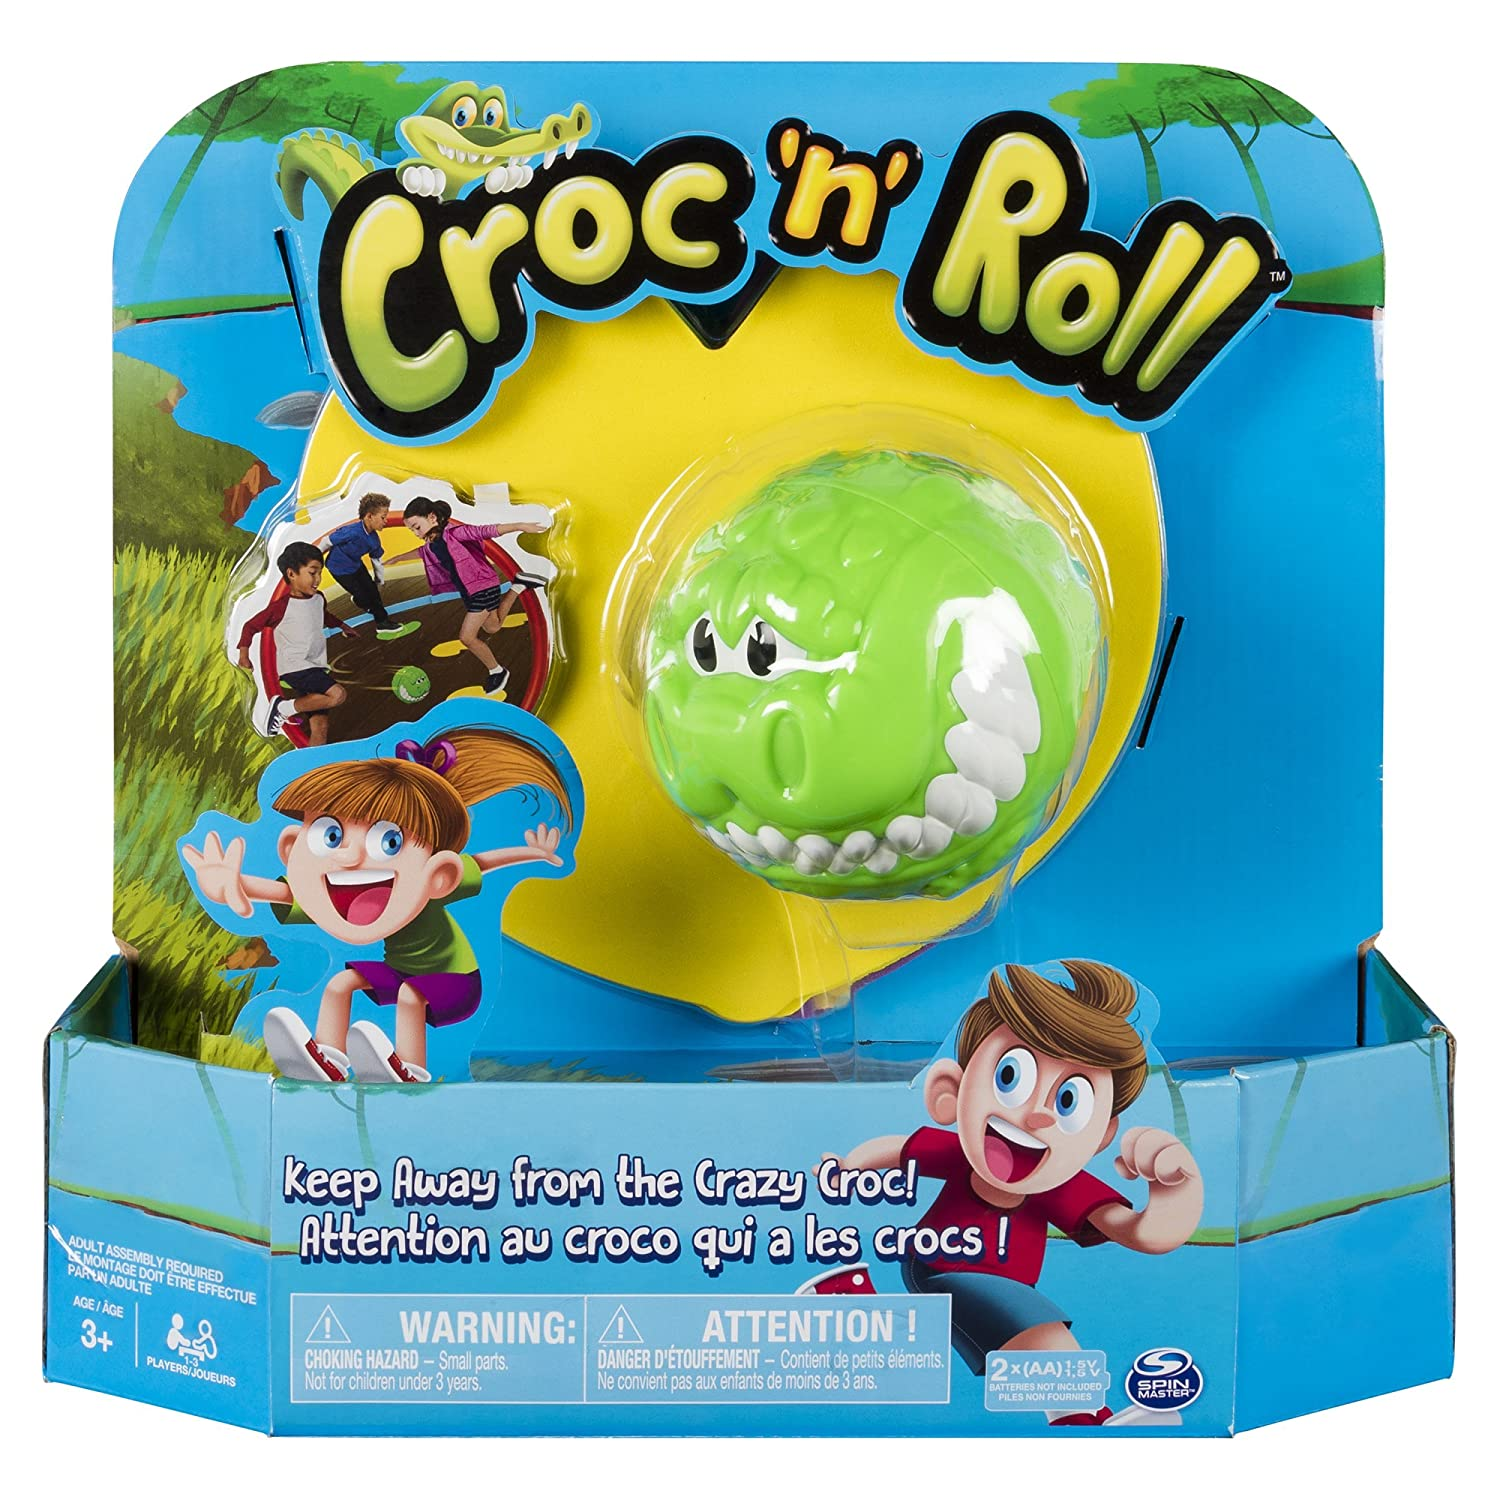 https://www.amazon.com/Croc-Roll-Family-Game-Kids/dp/B079T4HX5V